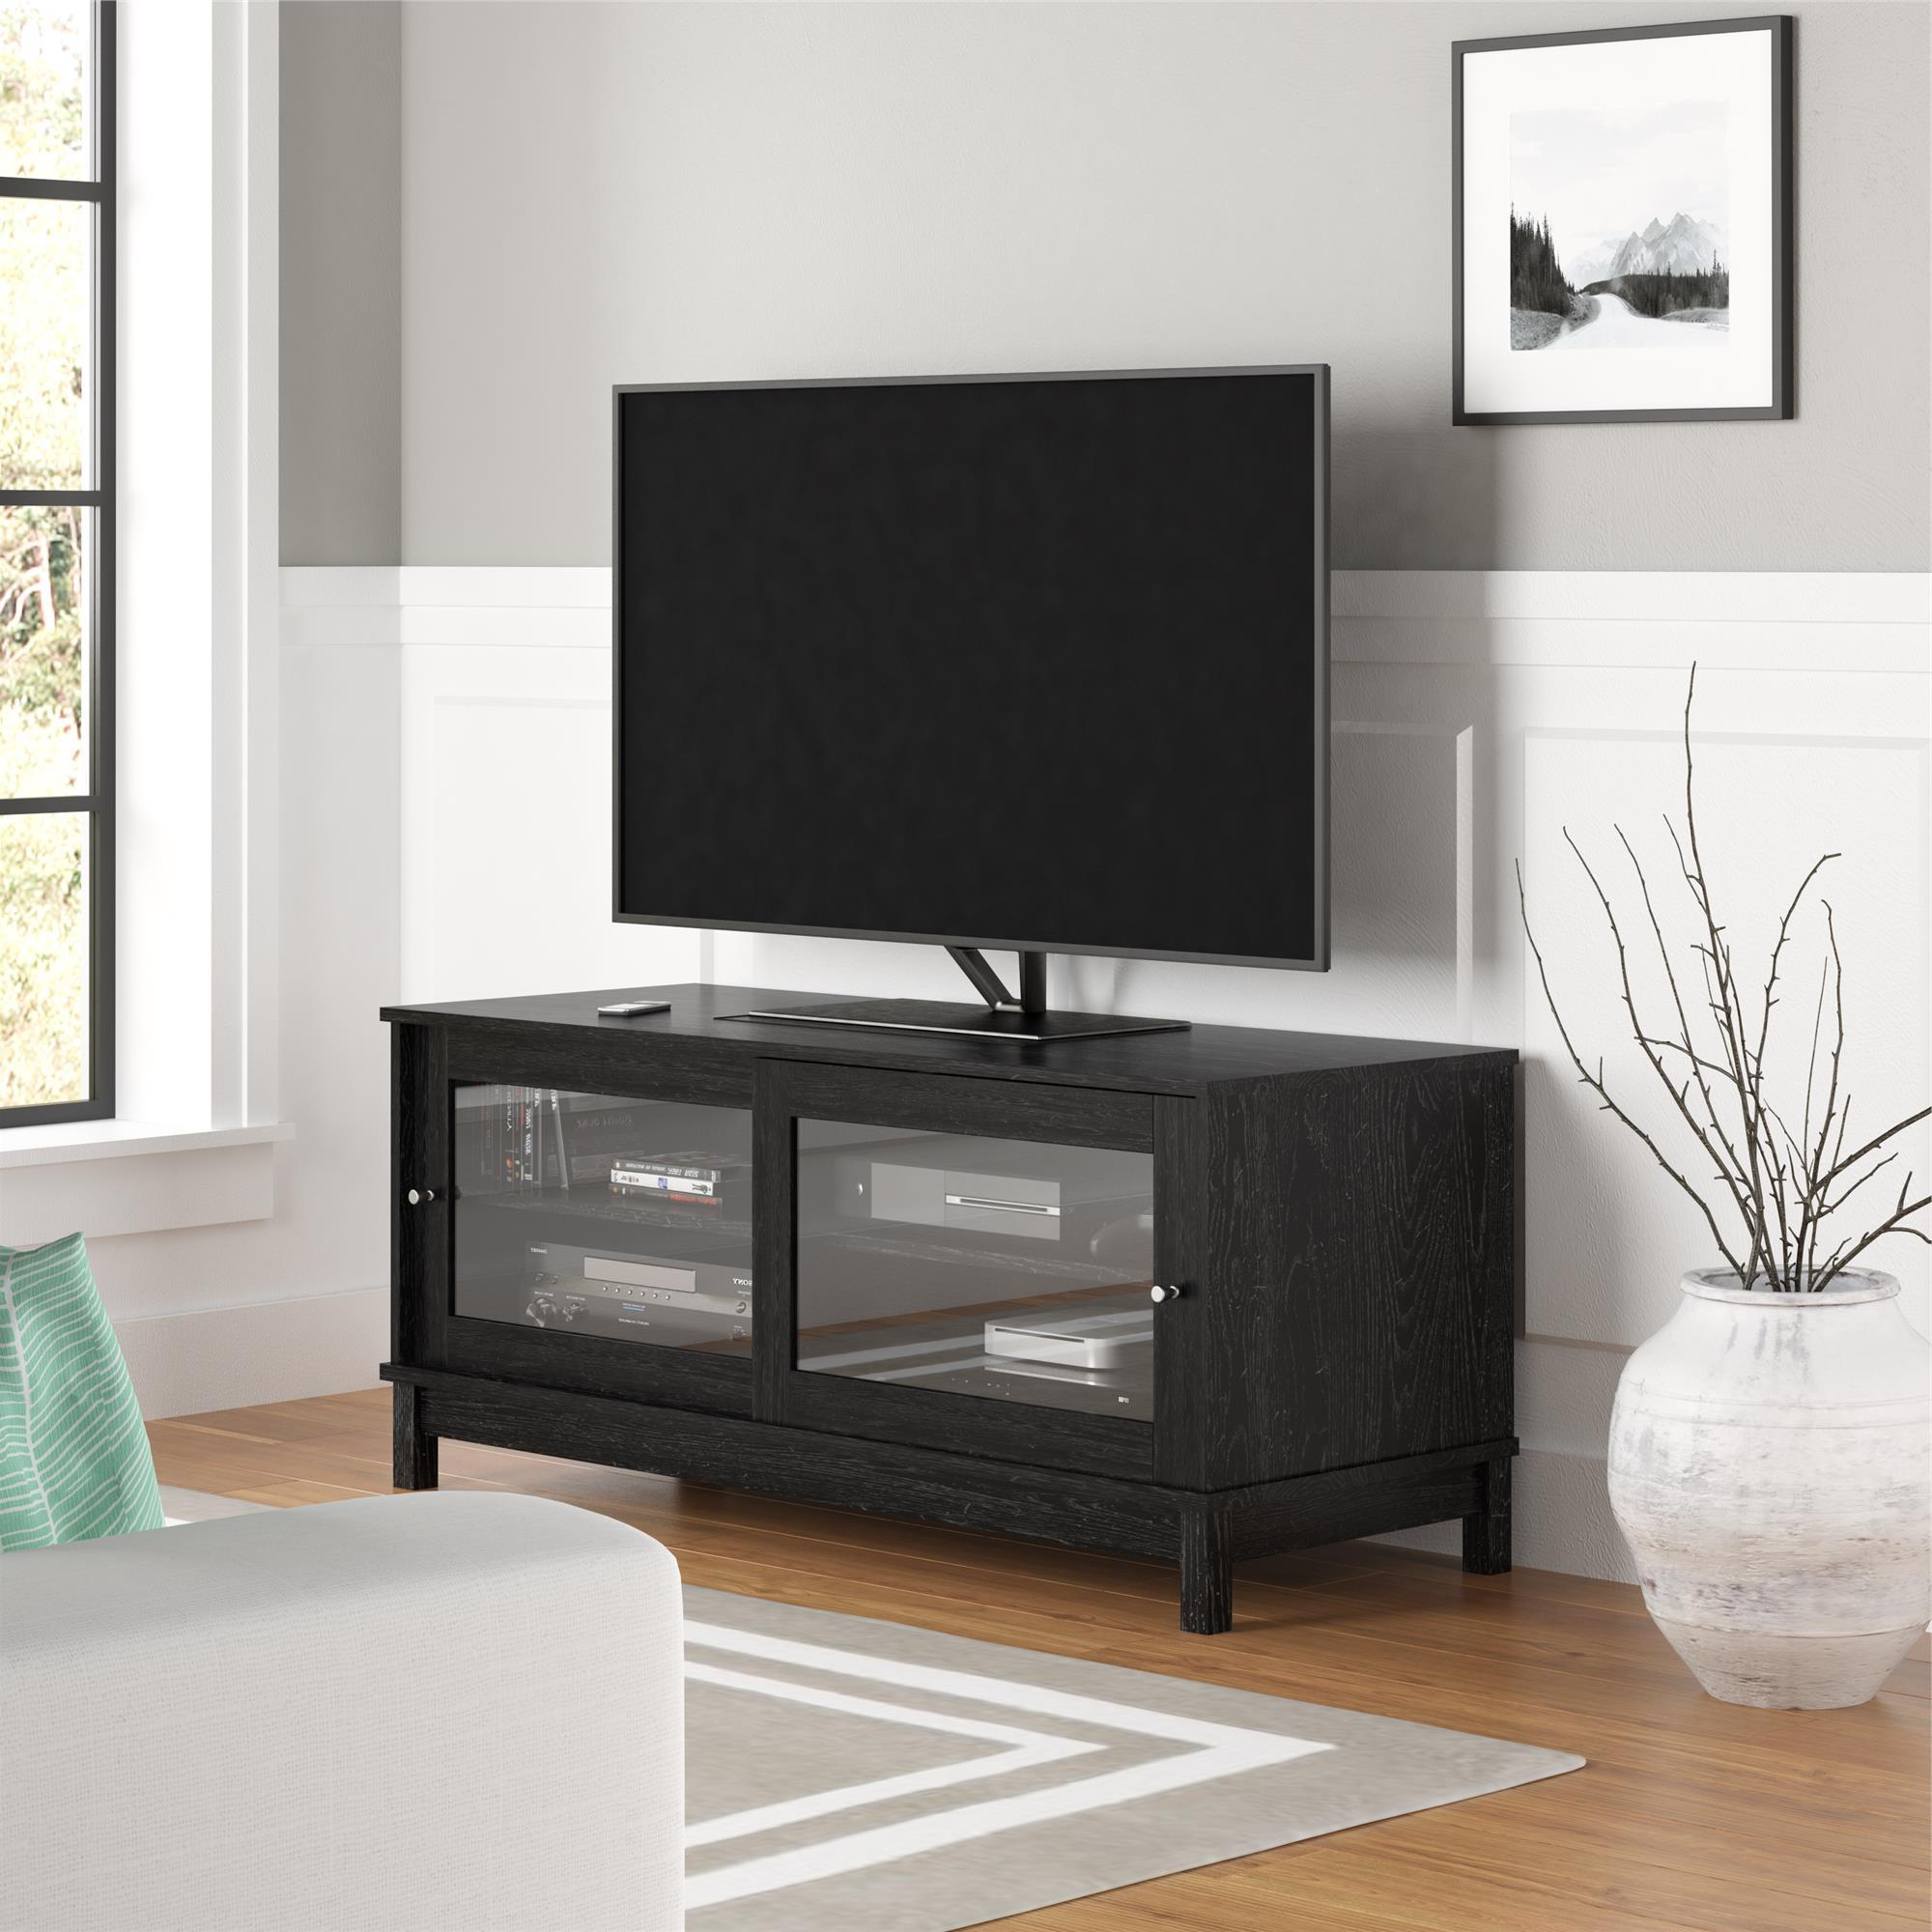 """Mainstays Tv Stand For Tvs Up To 55"""", Multiple Finishes Inside Twila Tv Stands For Tvs Up To 55"""" (View 3 of 20)"""